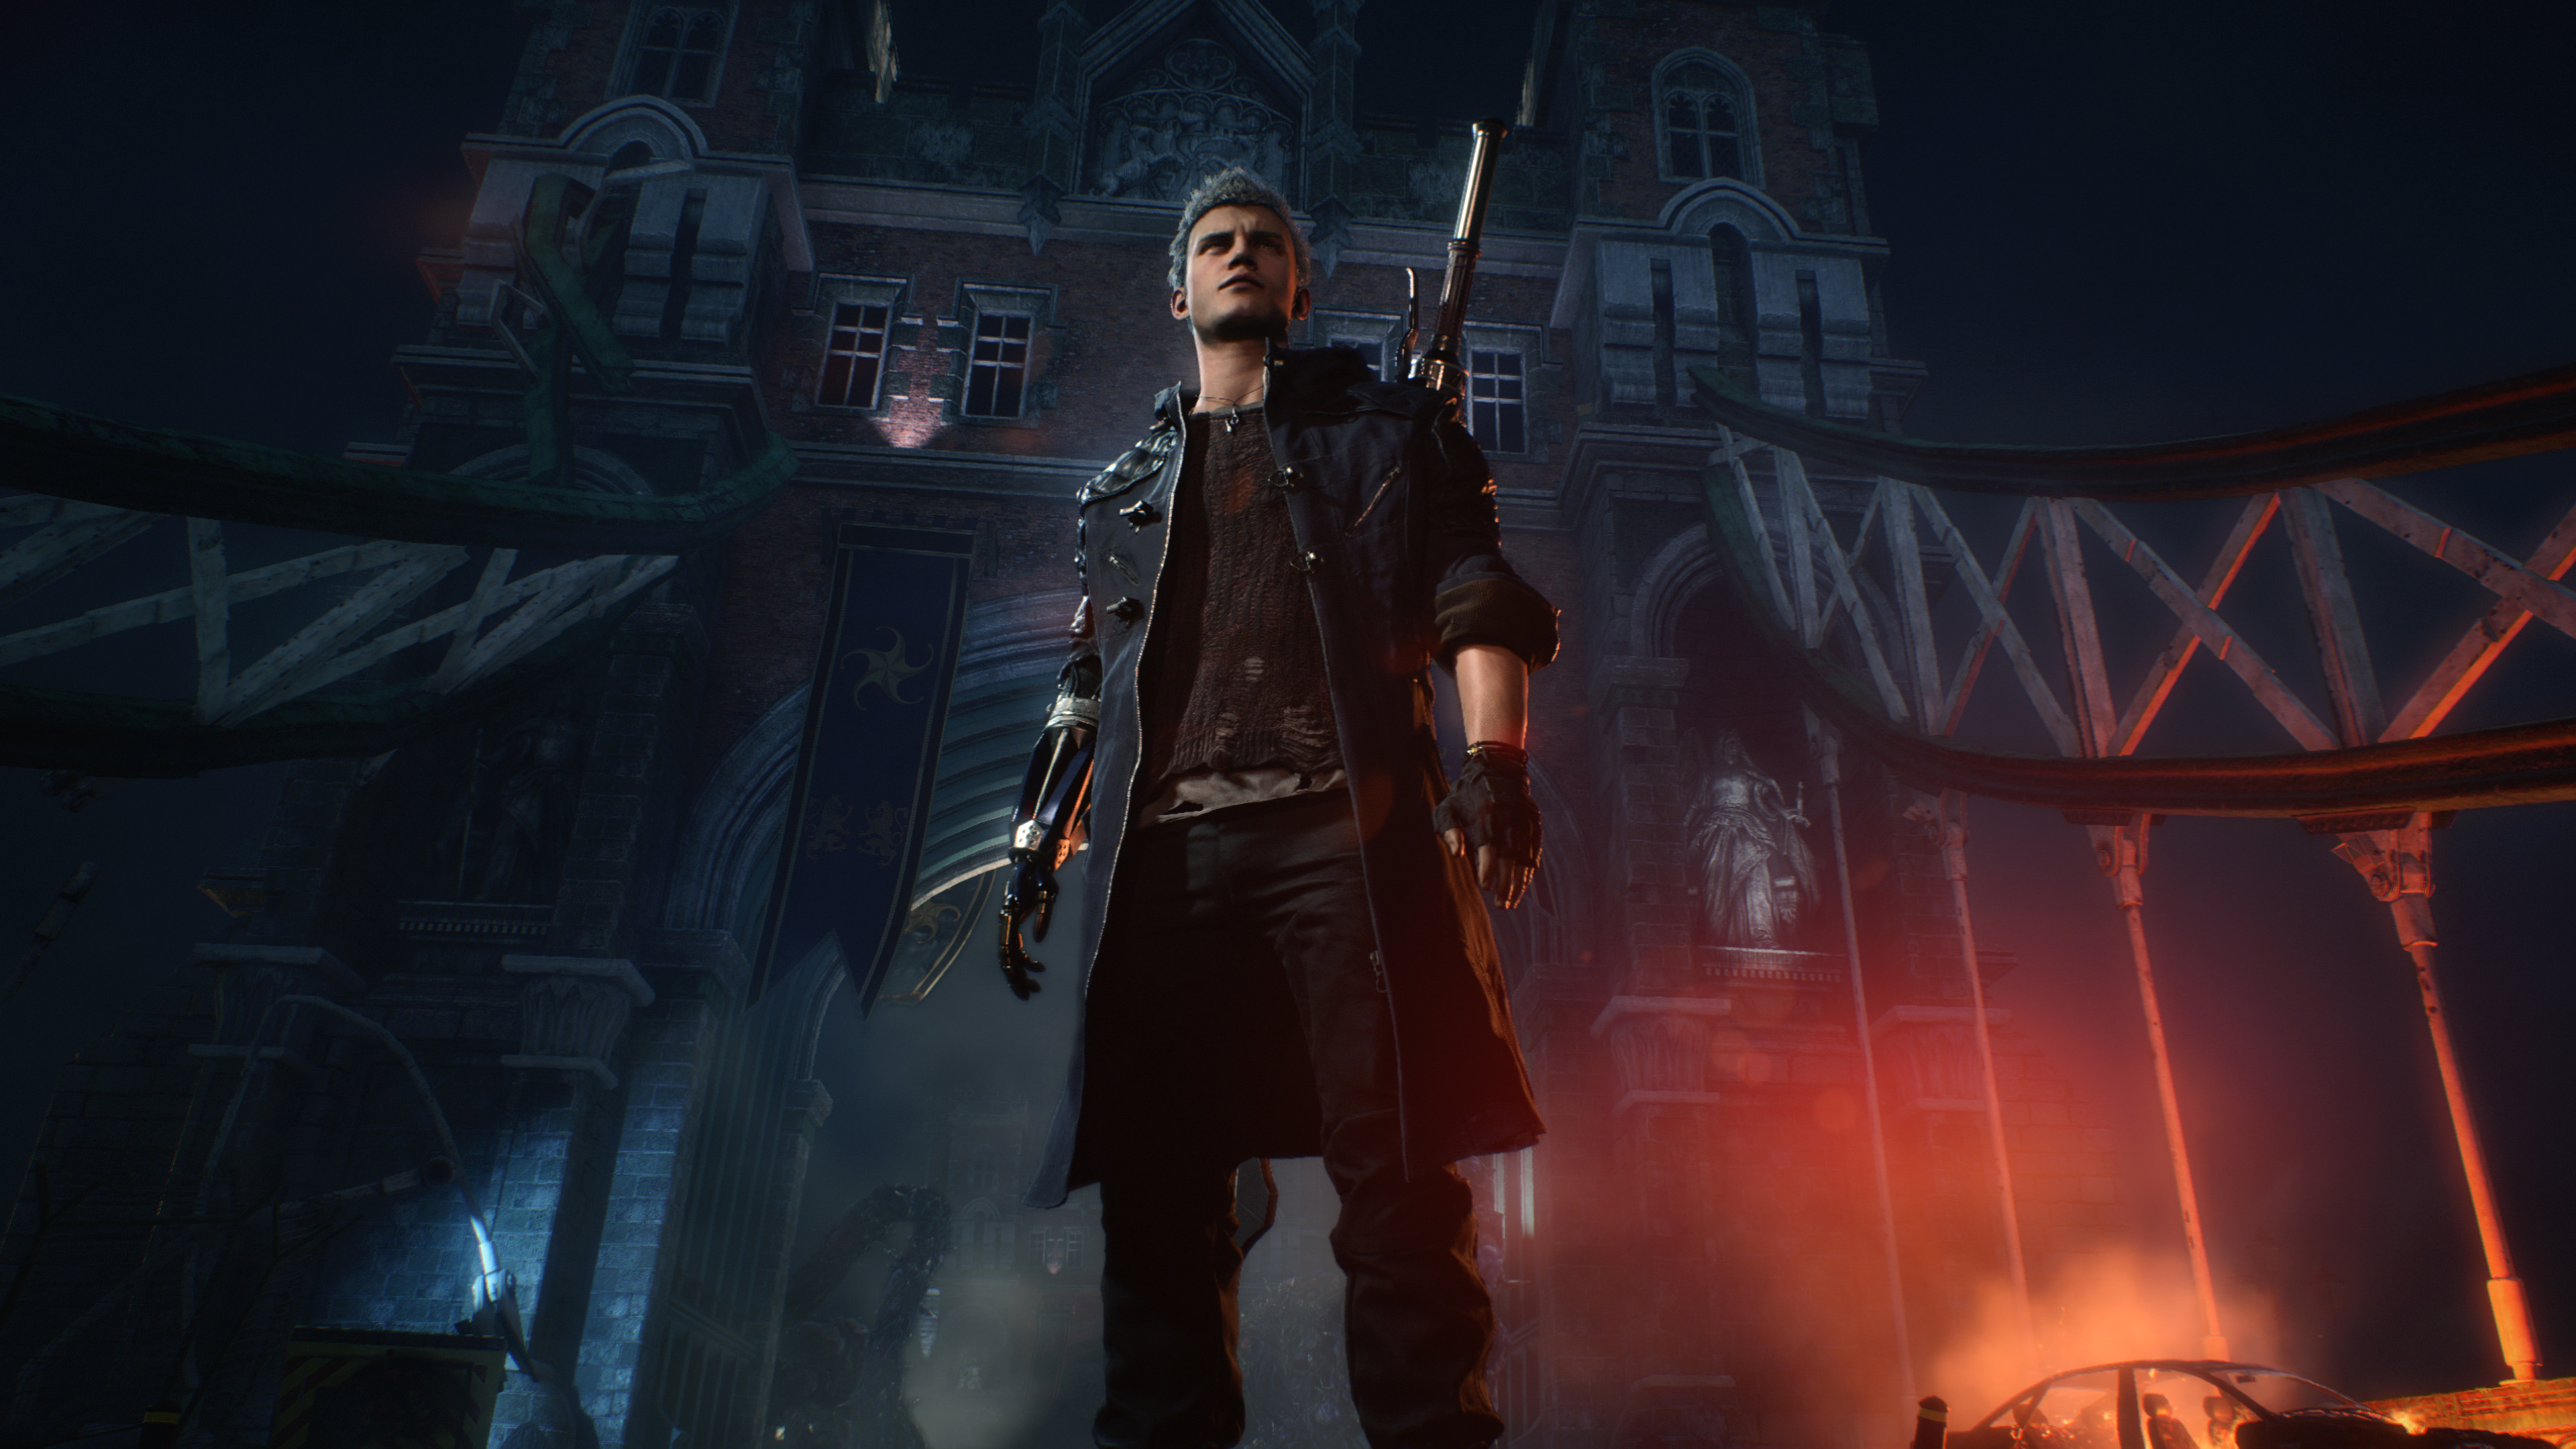 Nero From Devil May Cry 5 Wallpaper 4k Ultra Hd Id4326